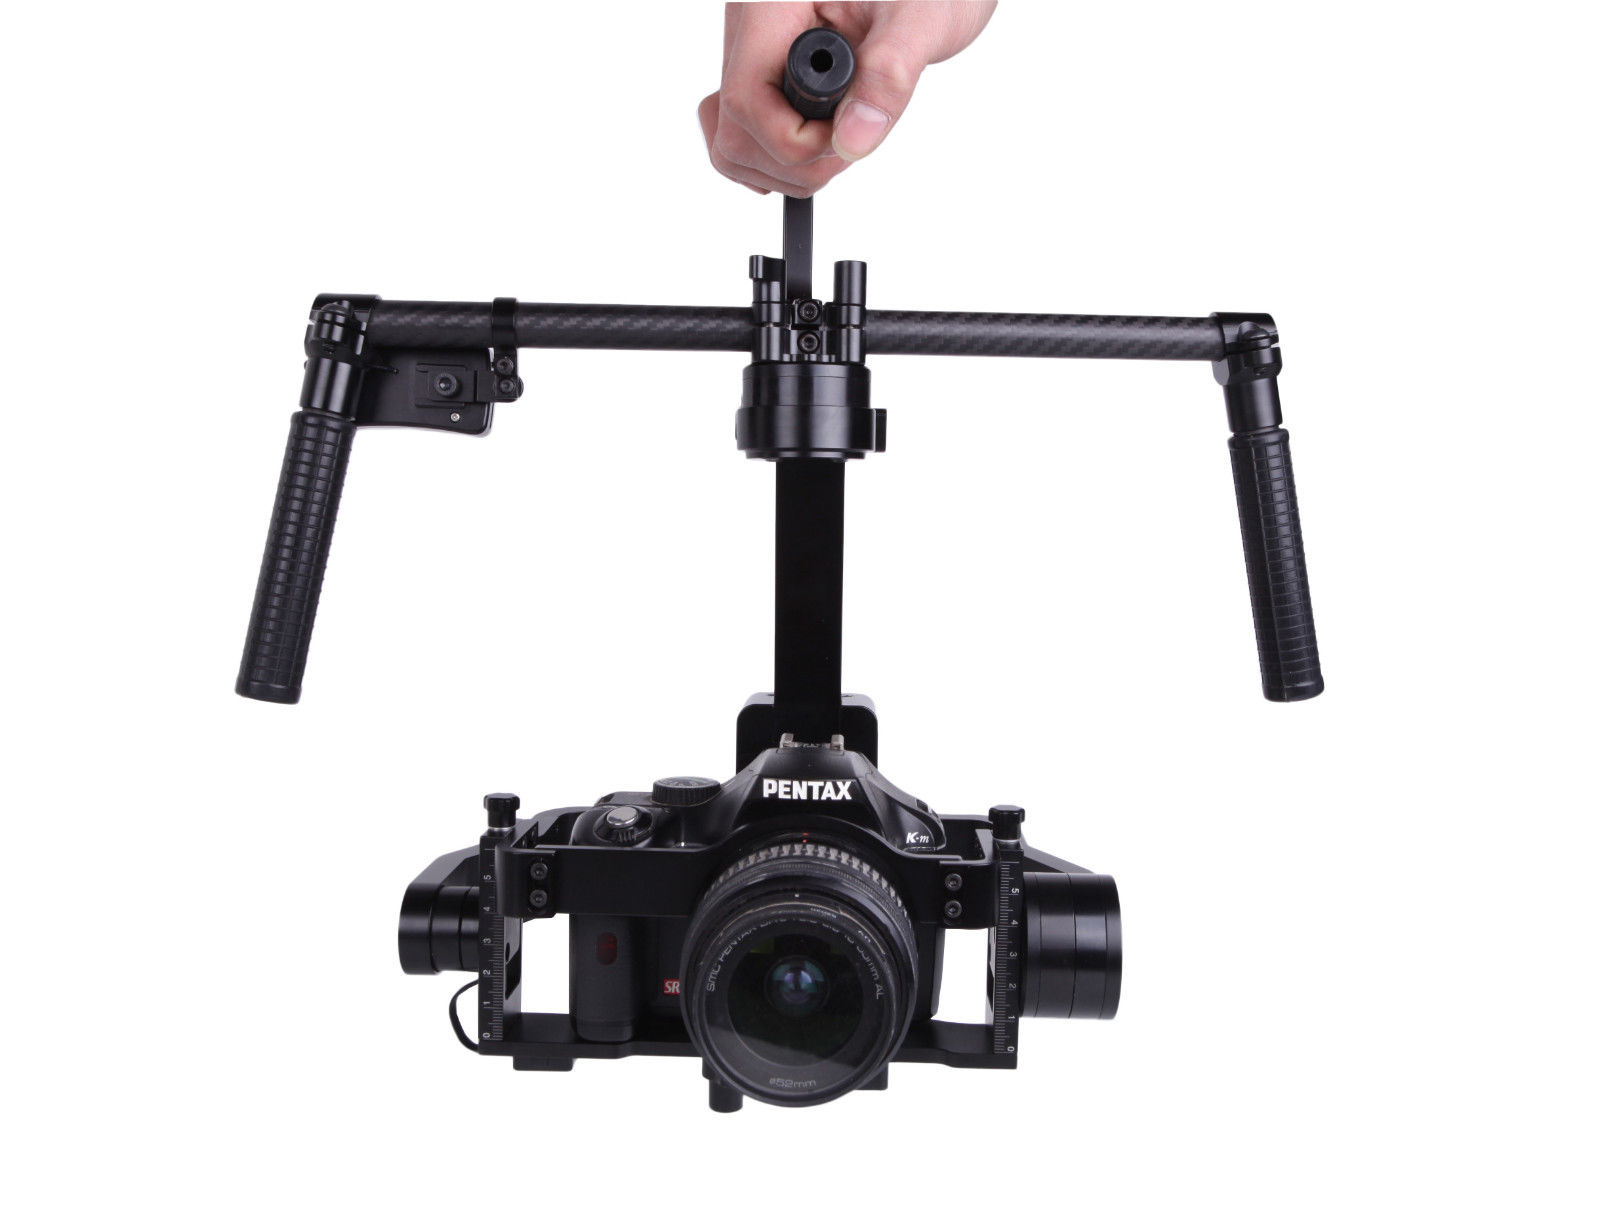 G6300 encoder Brushless Handheld Gimbal A6300 GH4 NX1 G7 RX10 Camera Stabilizer yuneec q500 typhoon quadcopter handheld cgo steadygrip gimbal black